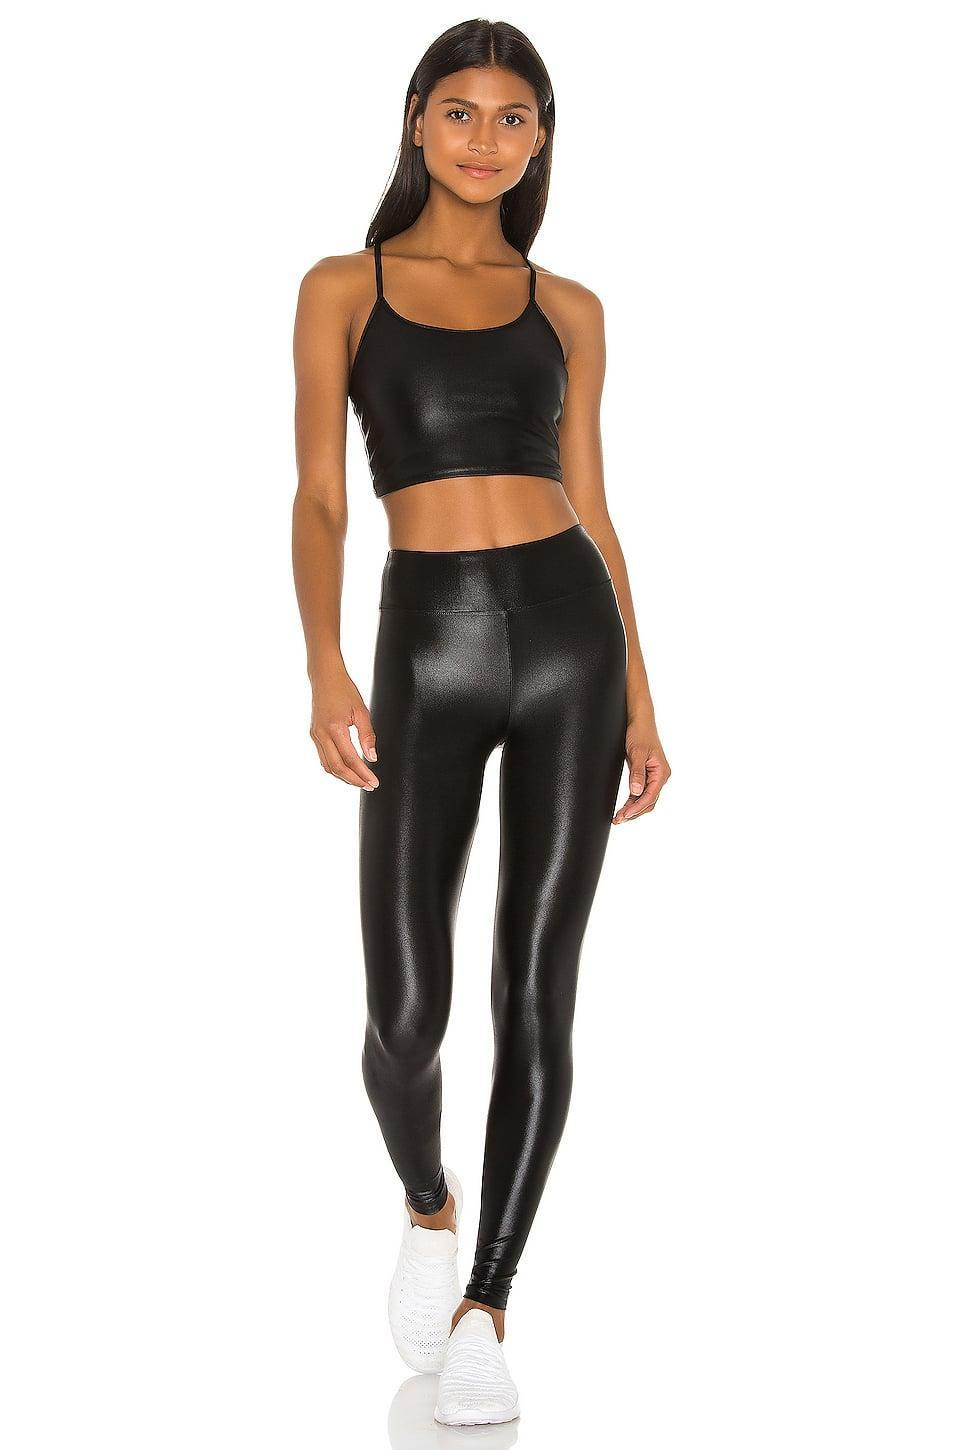 <p>This shiny <span>Koral Leah Infinity Sports Bra</span> ($65) and <span>Lustrous High Rise Legging</span> ($80) looks so good on.</p>